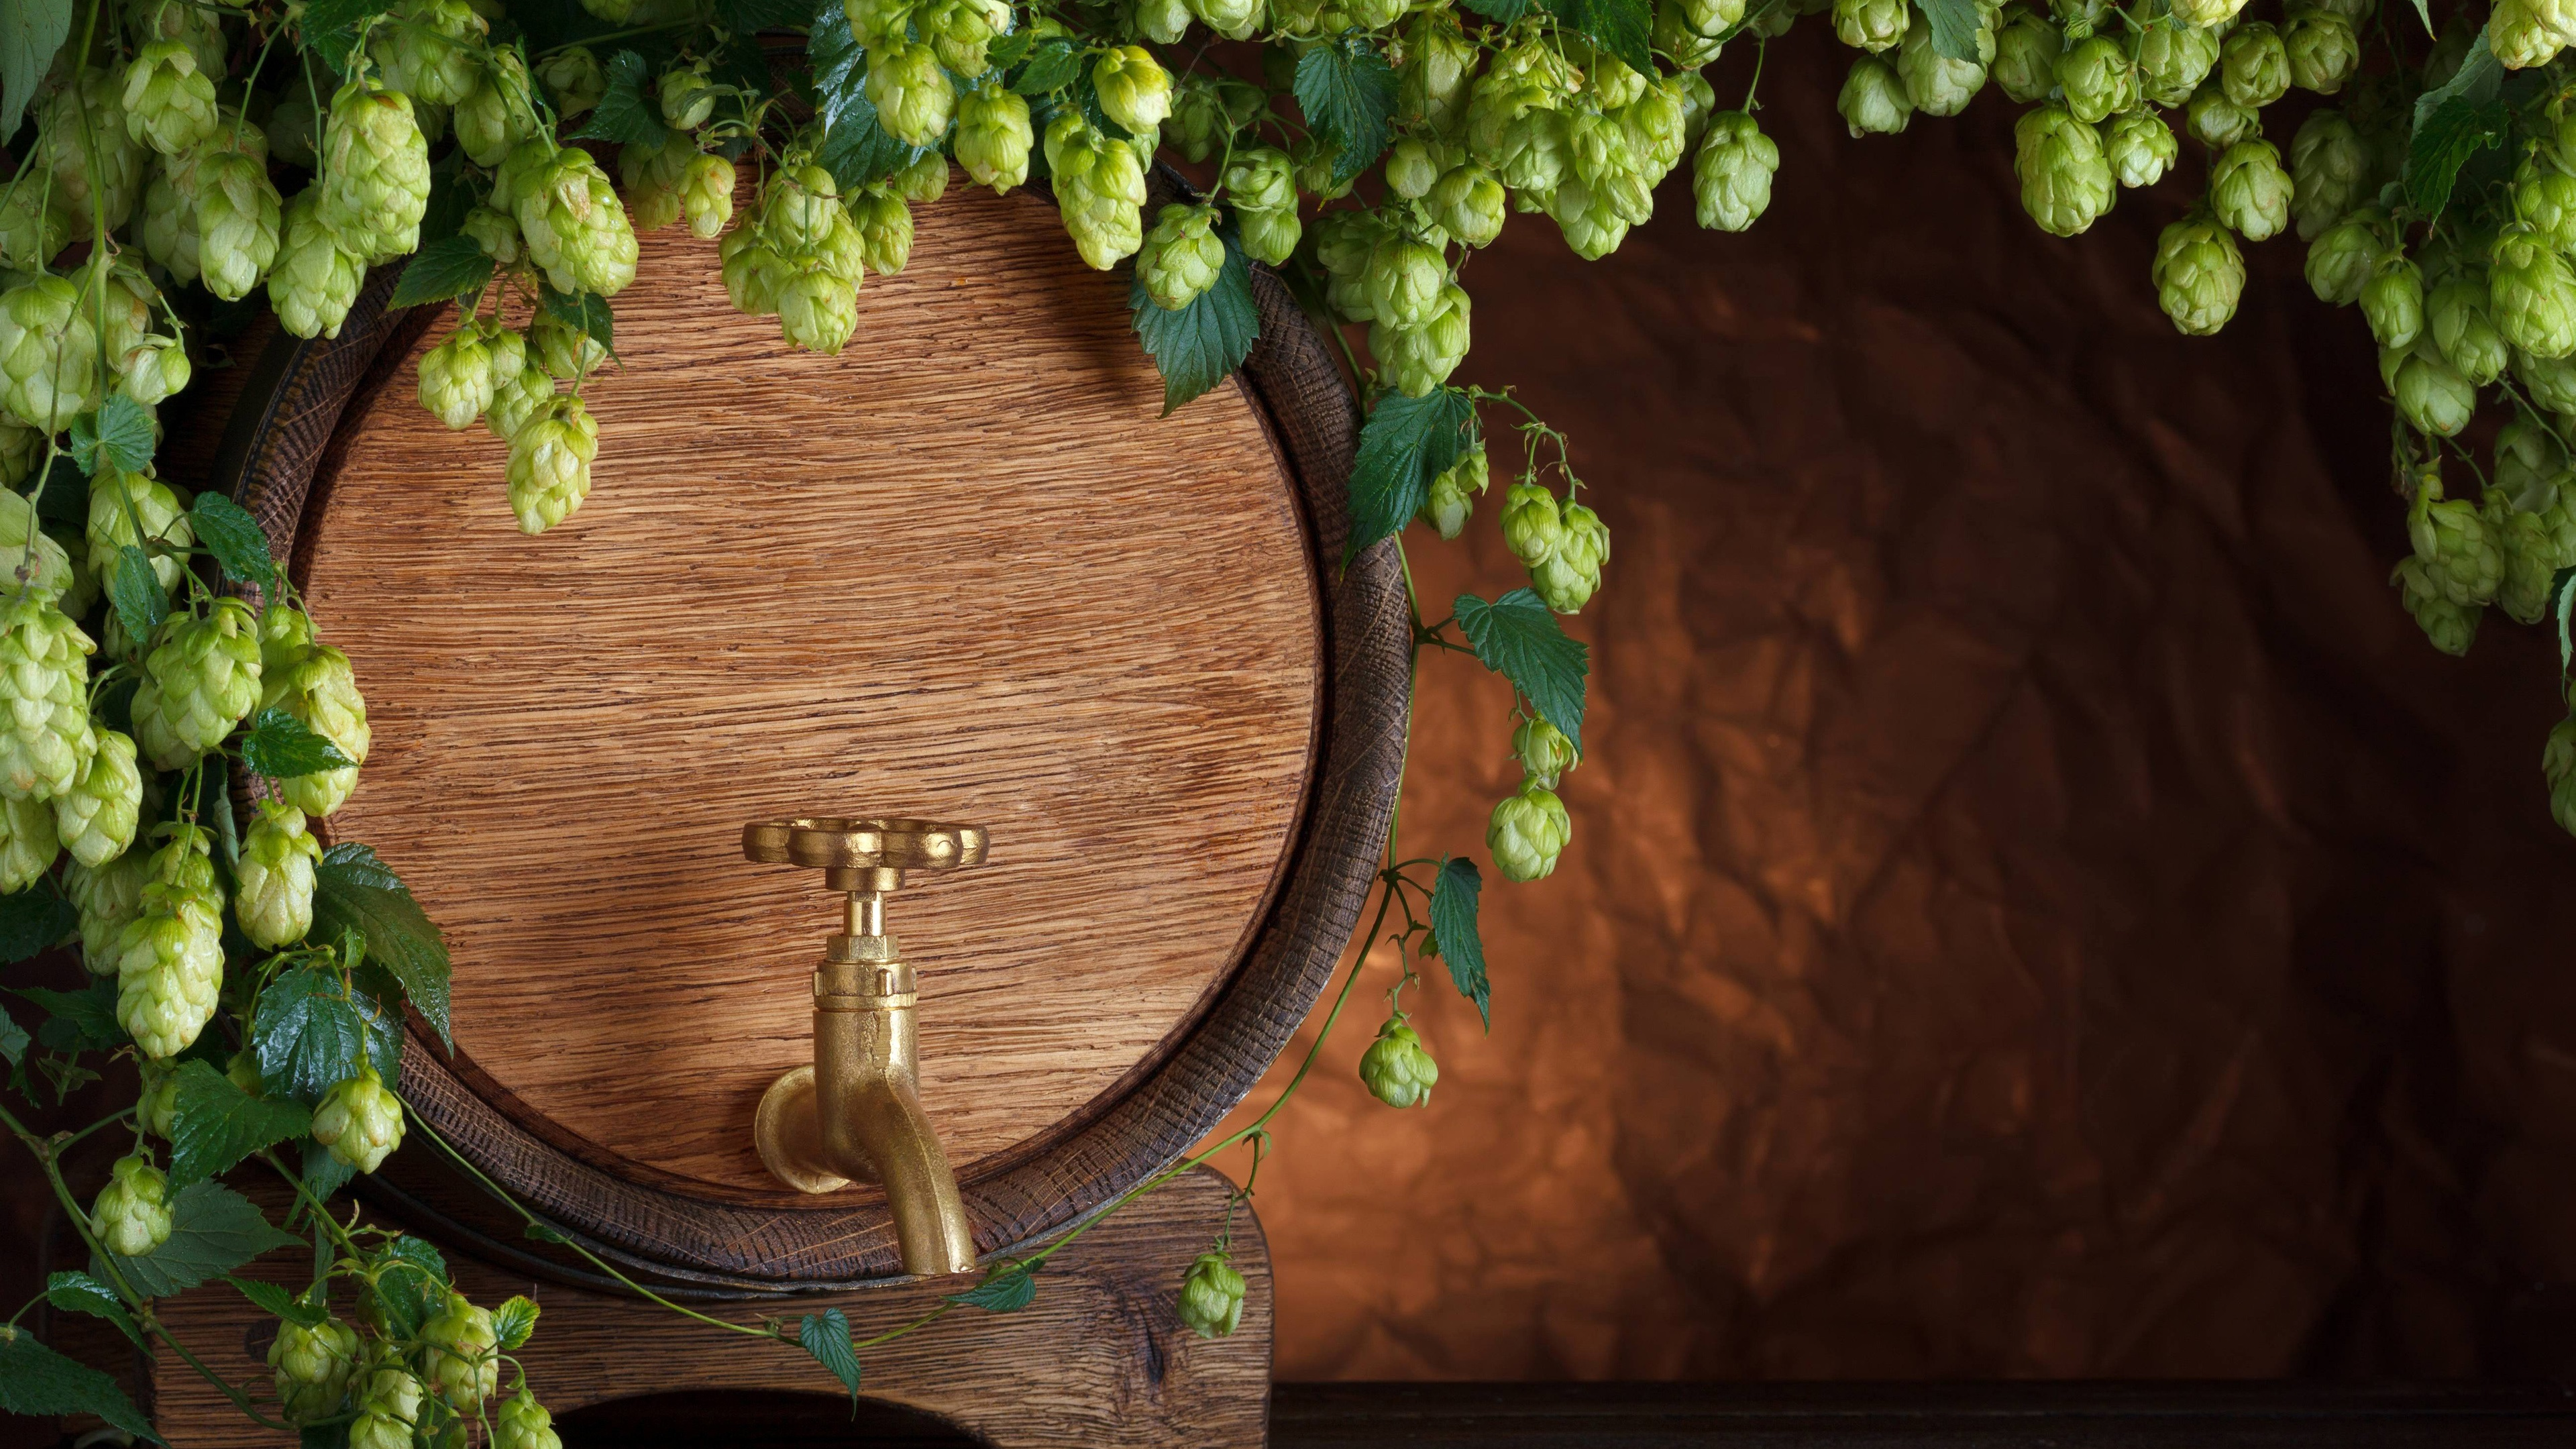 Wallpaper Barrel Beer Hops Tap 3840x2160 Uhd 4k Picture Image